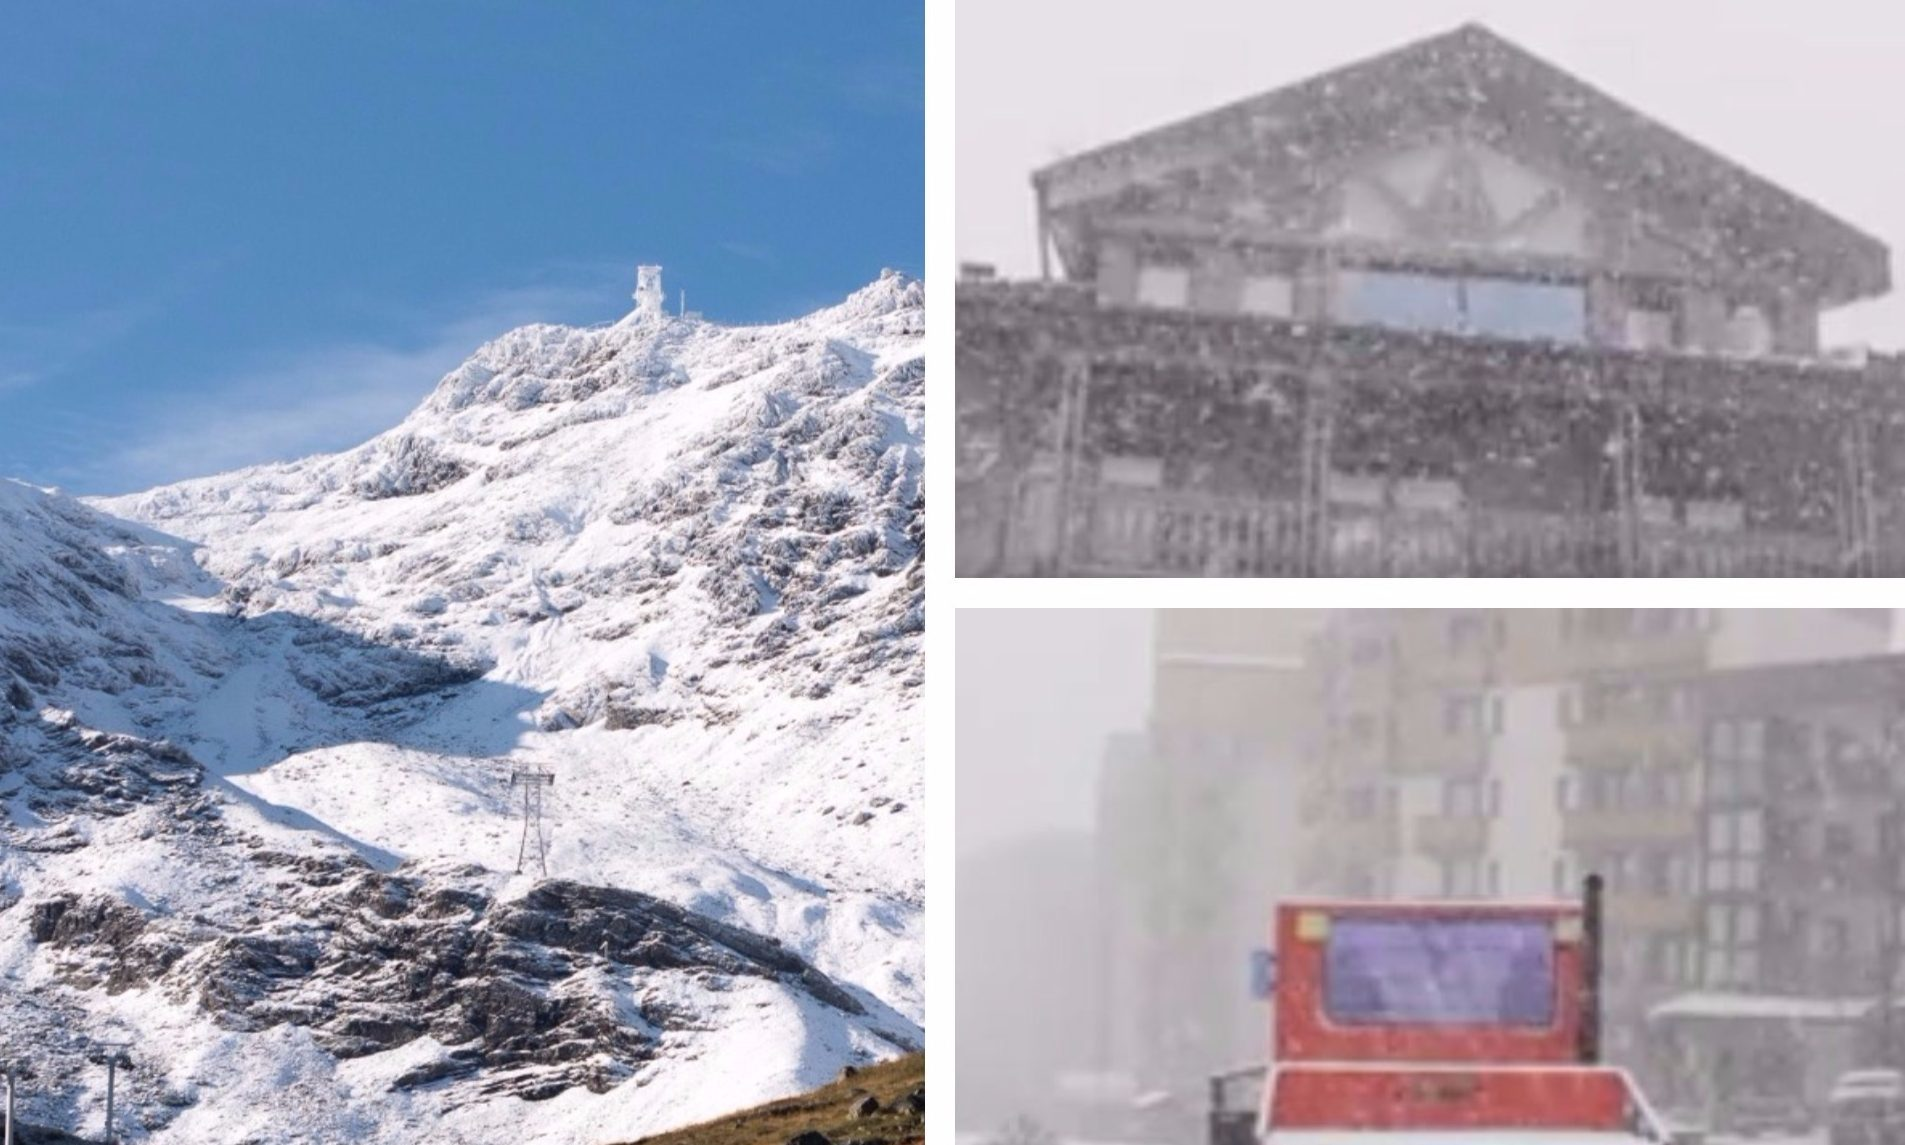 Snow blasts Val Thorens in the first weekend of September.